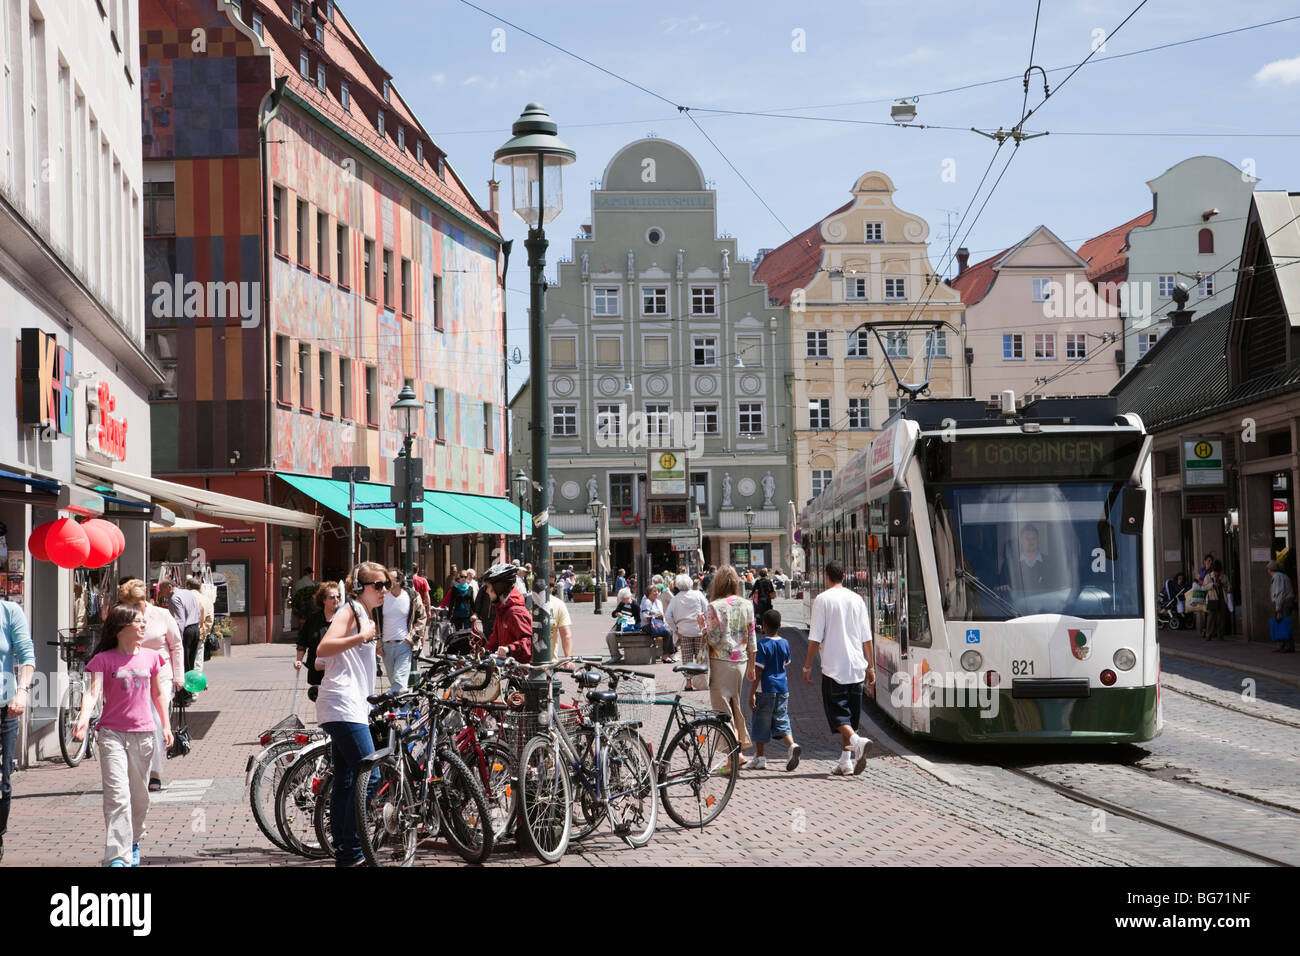 Moritzplatz, Augsburg, Bavaria, Germany, Europe. Parked bicycles and Tram on busy street in old city centre. - Stock Image